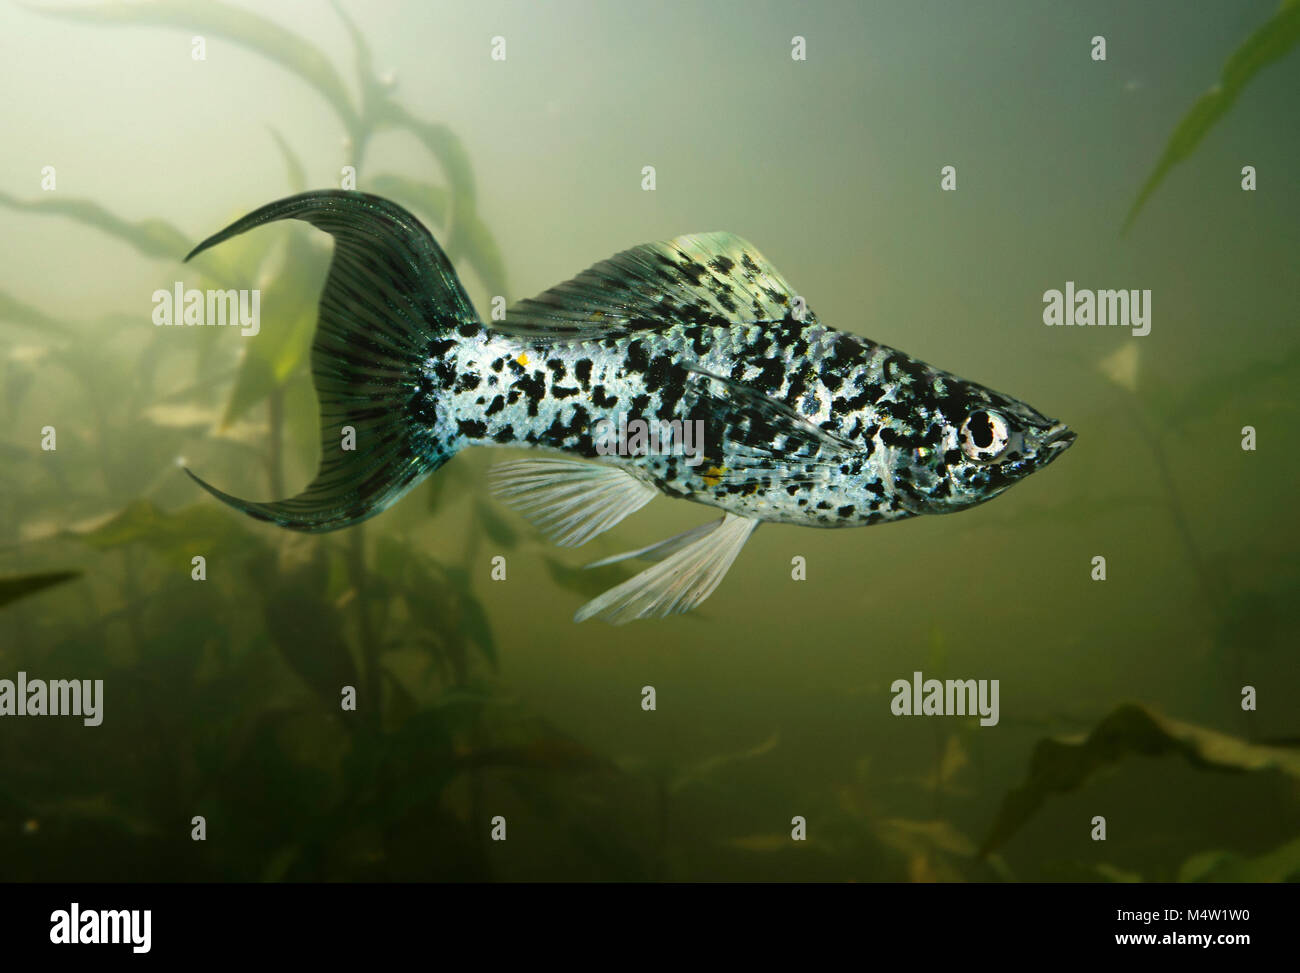 Female Short-finned Molly, Poecilia sphenops. Dalmatian Lyretail variety. Mollies are strictly American fish, found - Stock Image